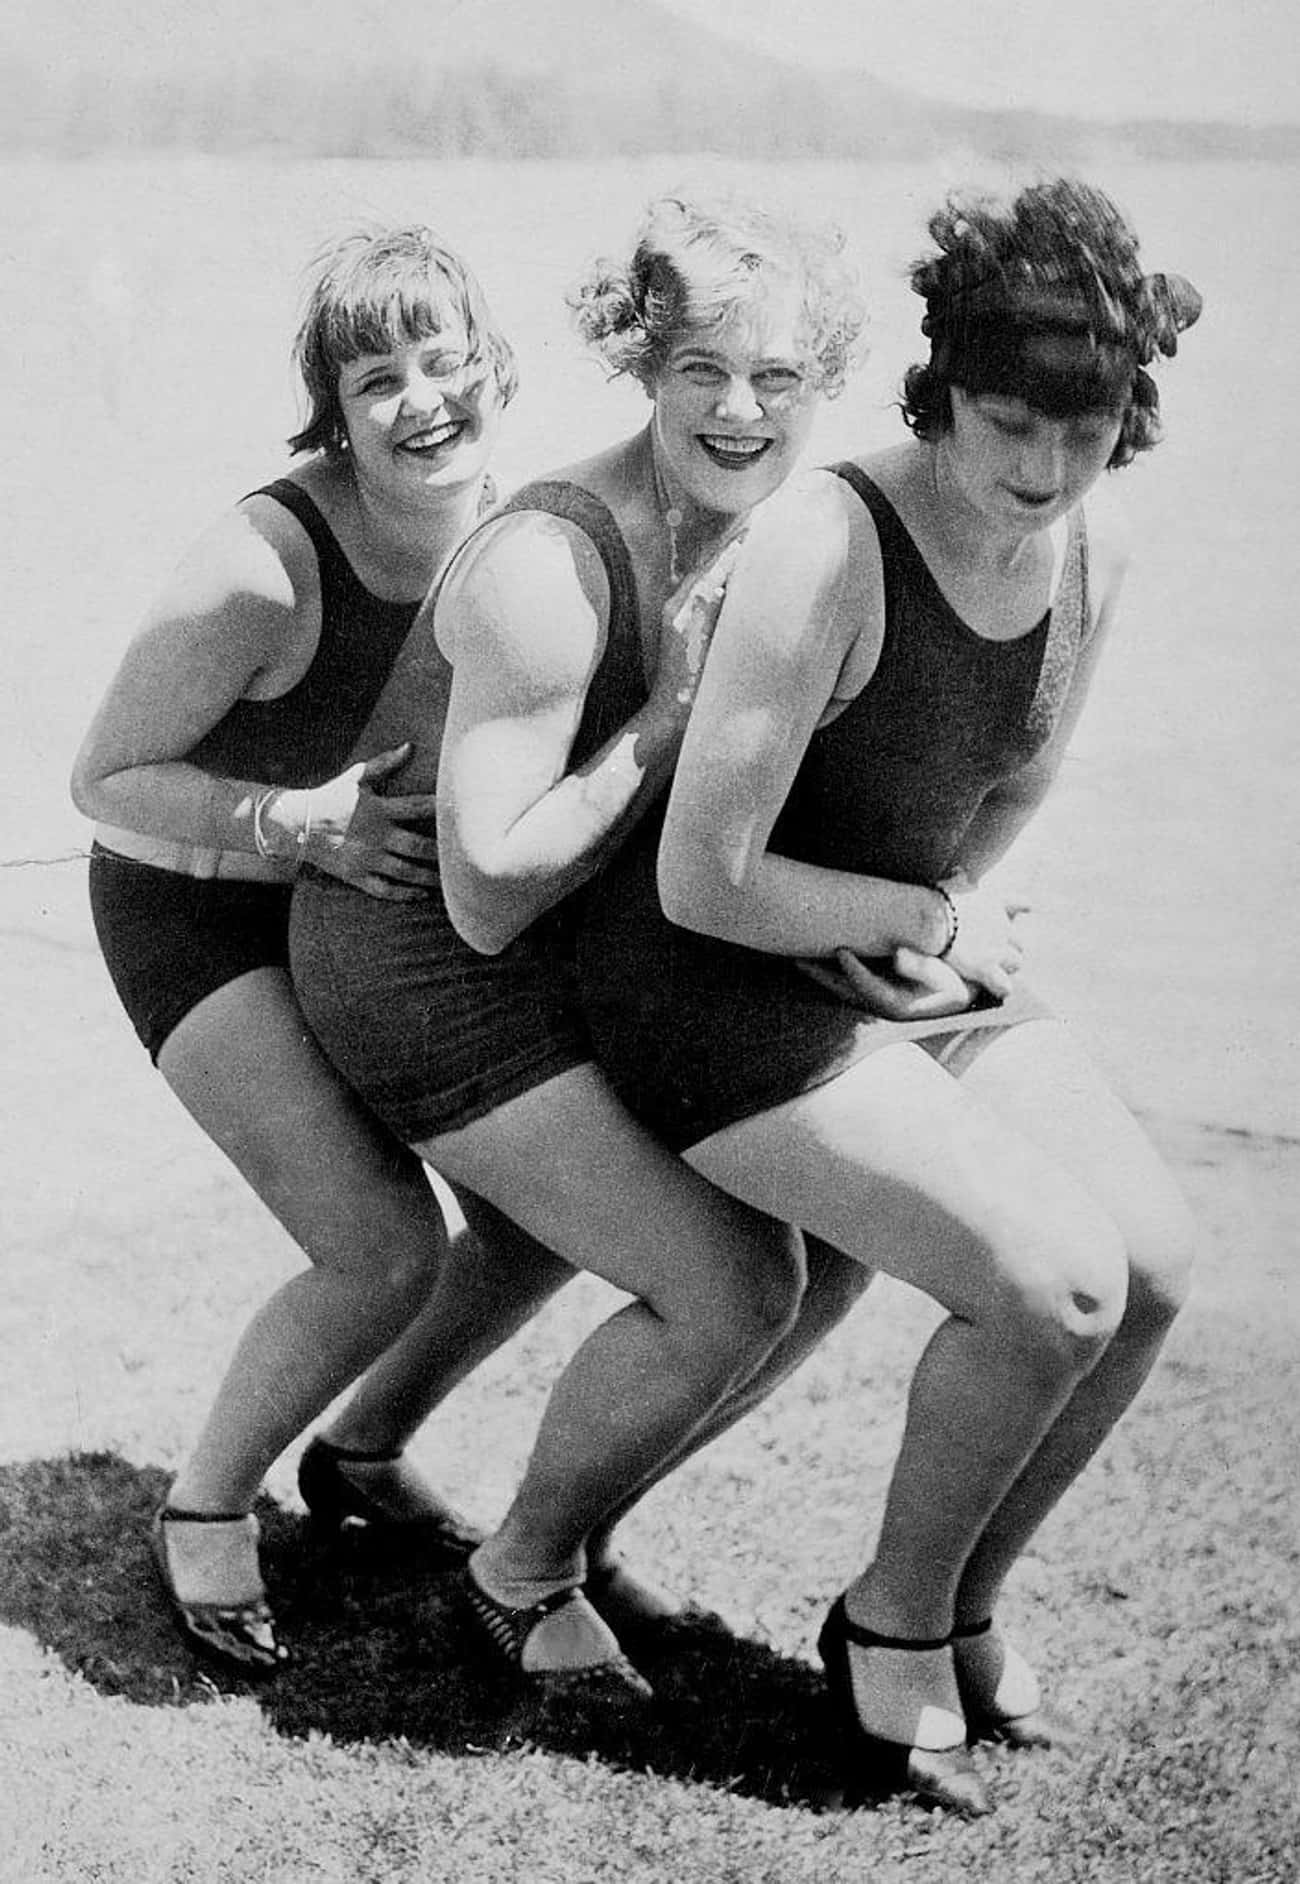 Young Flappers In Heels At The is listed (or ranked) 1 on the list 33 Pics of Old-Timey Swimsuits That Will Have You Dreaming of the Beach